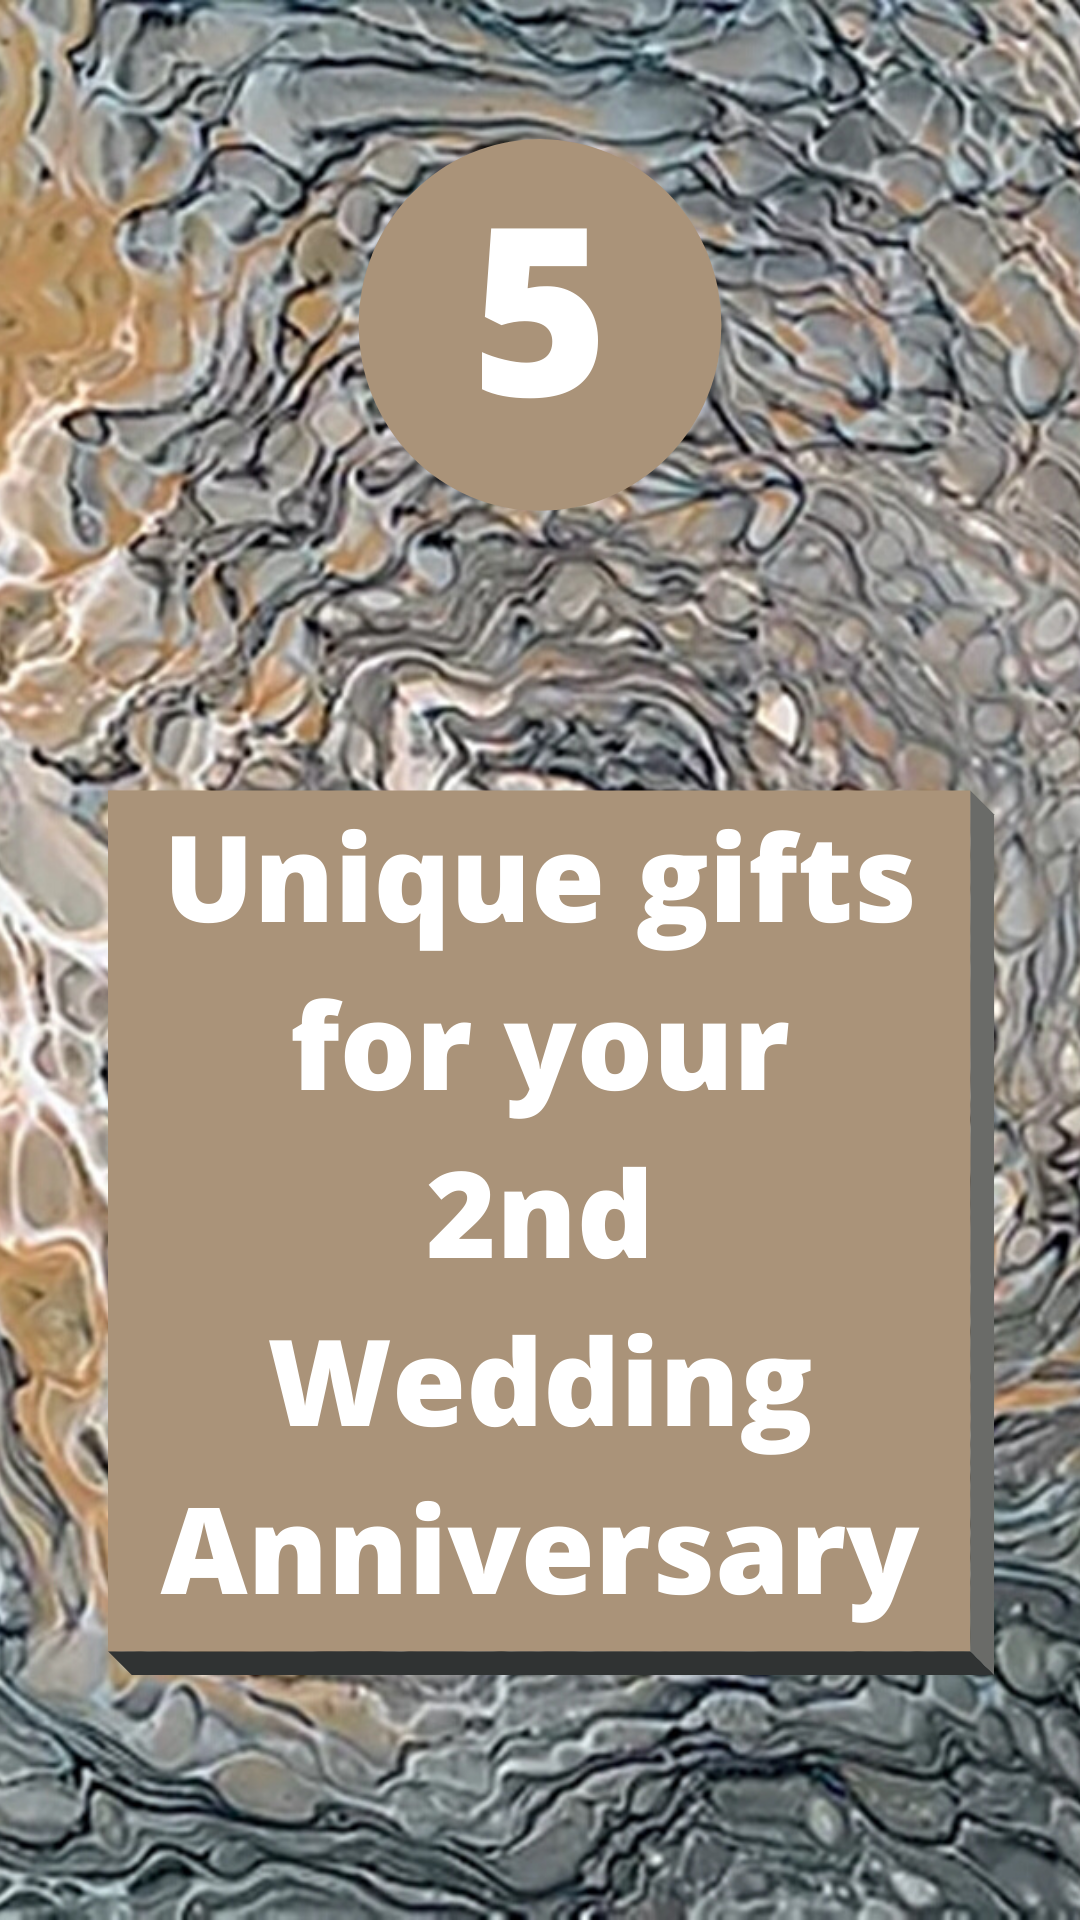 5 Unique Gift Ideas For Your 2nd Wedding Anniversary in